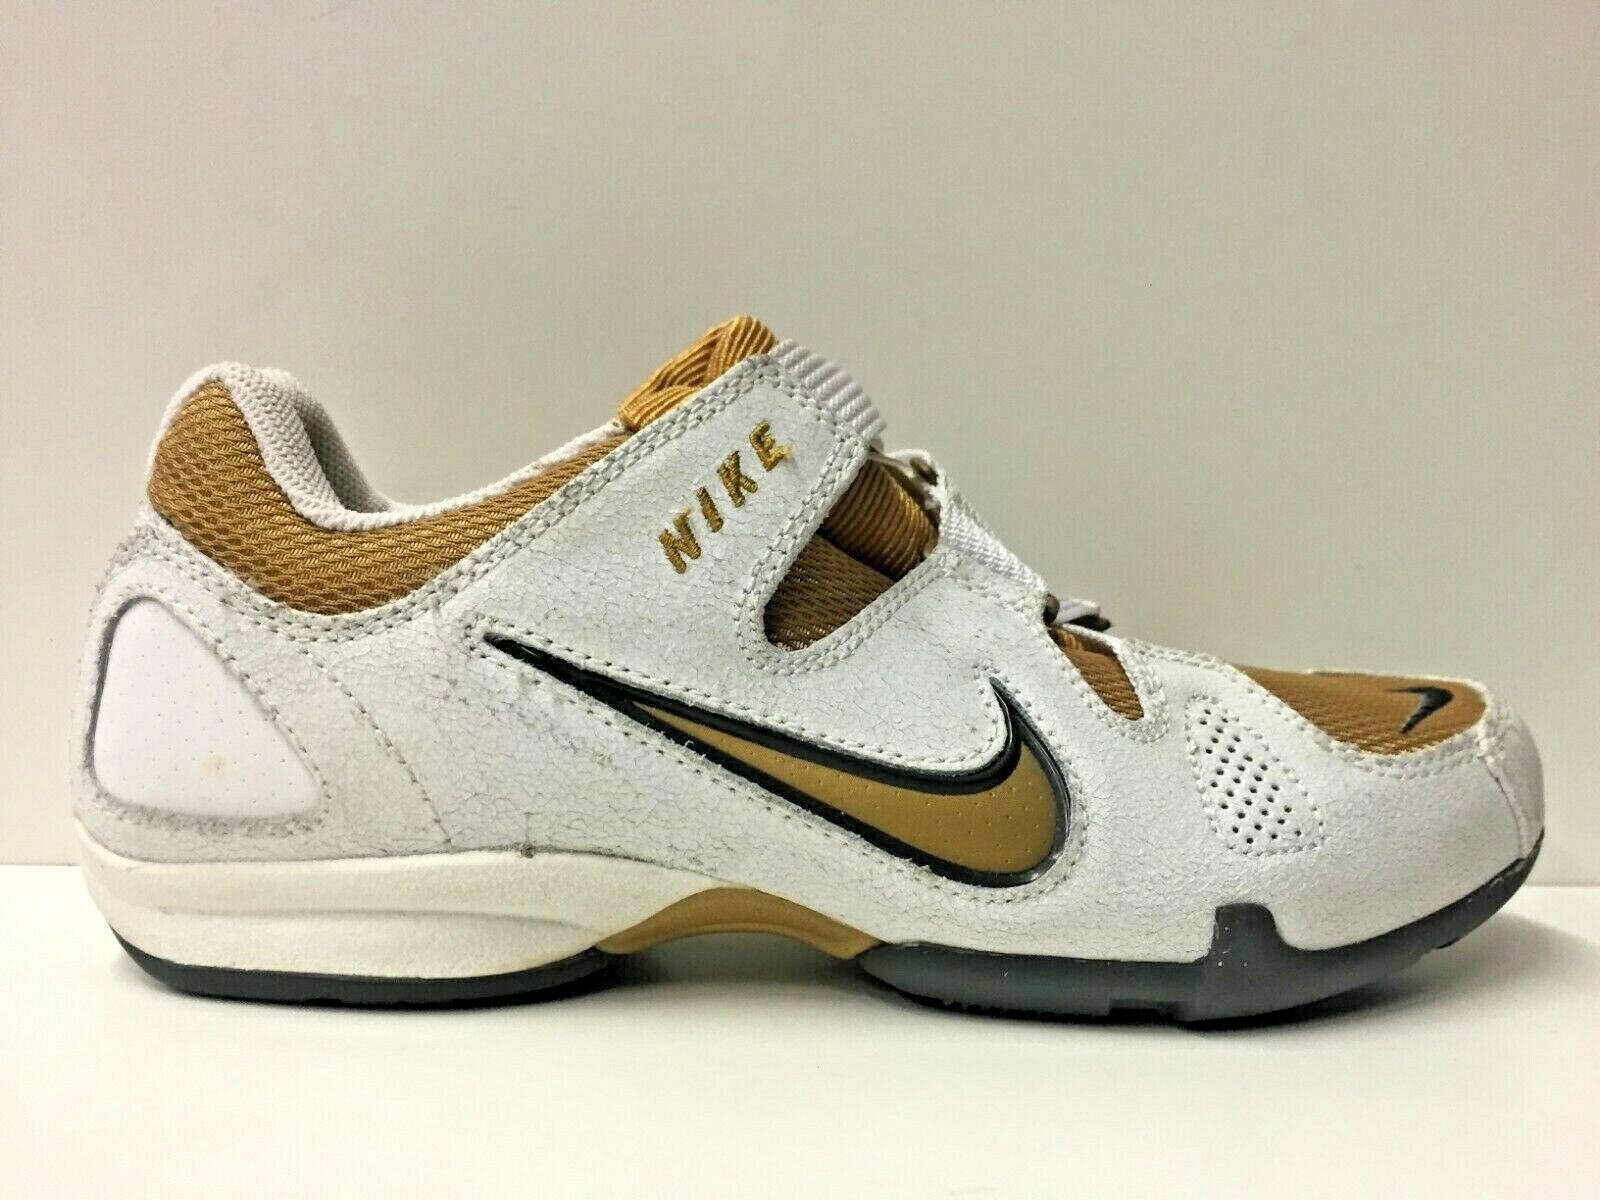 SCARPE SNEAKERS DONNA NIKE ORIGINALE SPIN TRAINER 311099 171 PELLE P/E NEW